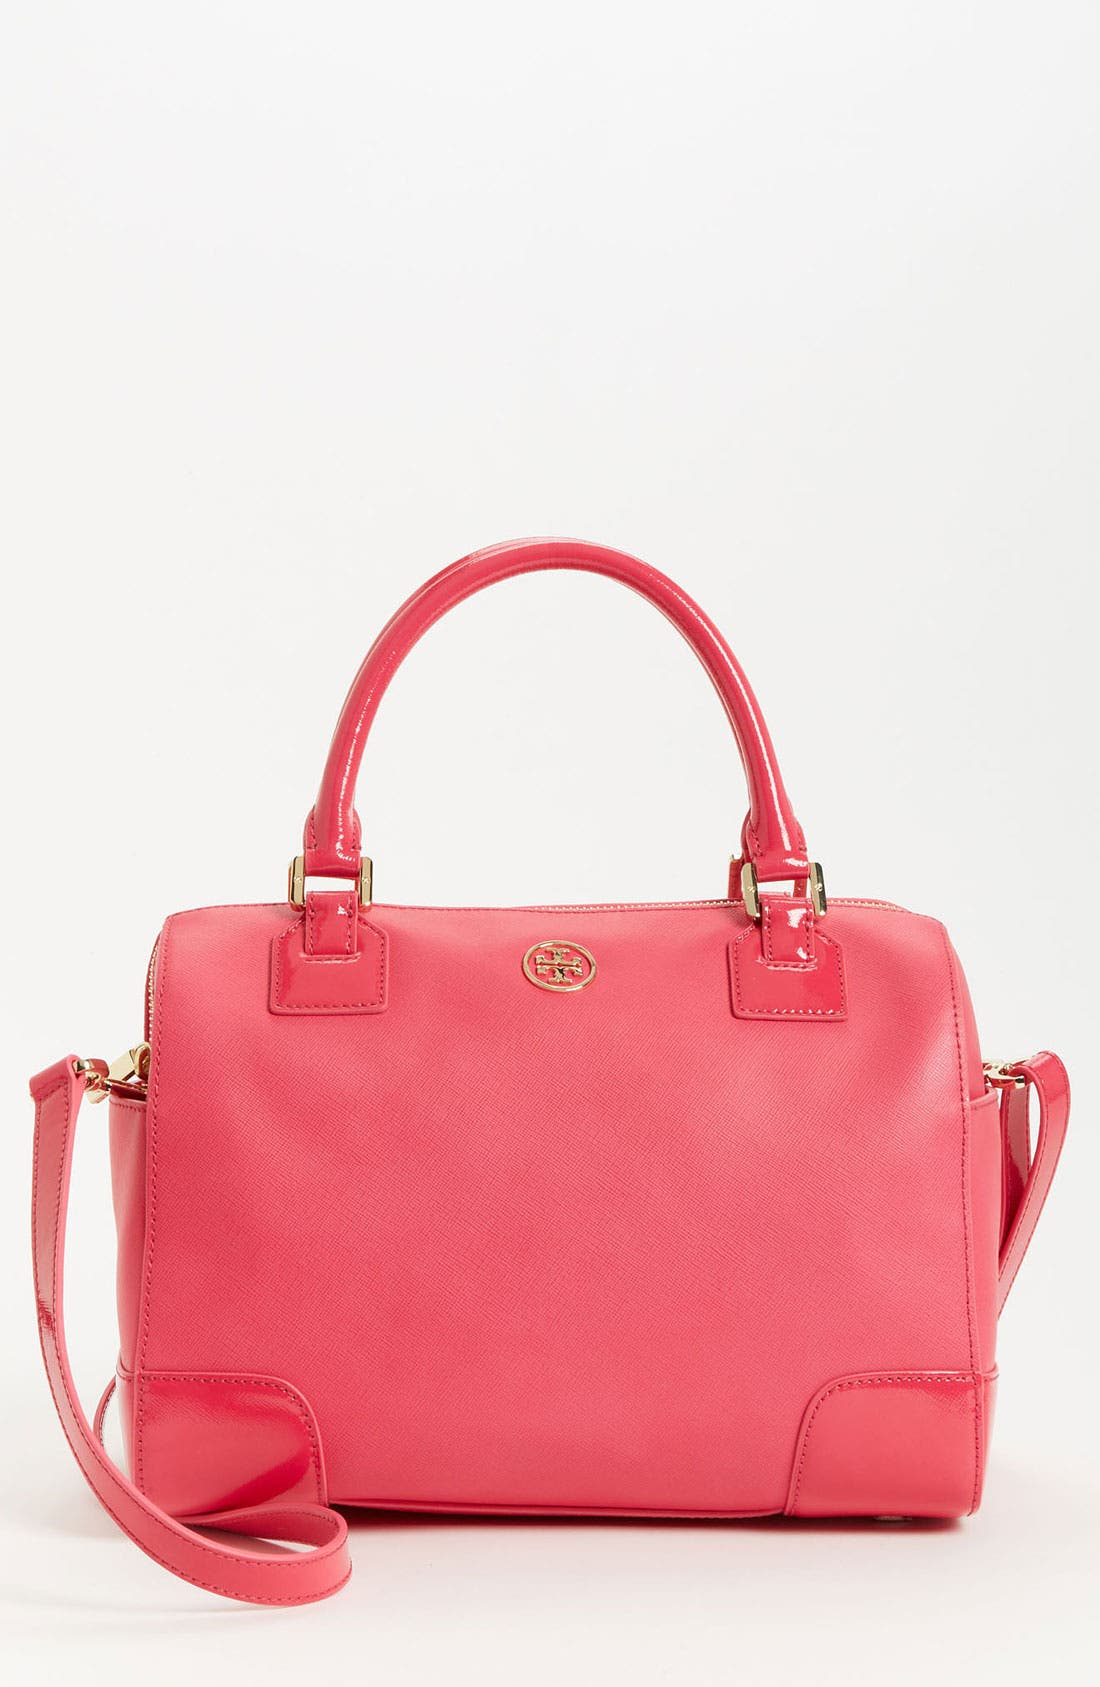 Main Image - Tory Burch 'Robinson - Middy' Saffiano Leather Satchel